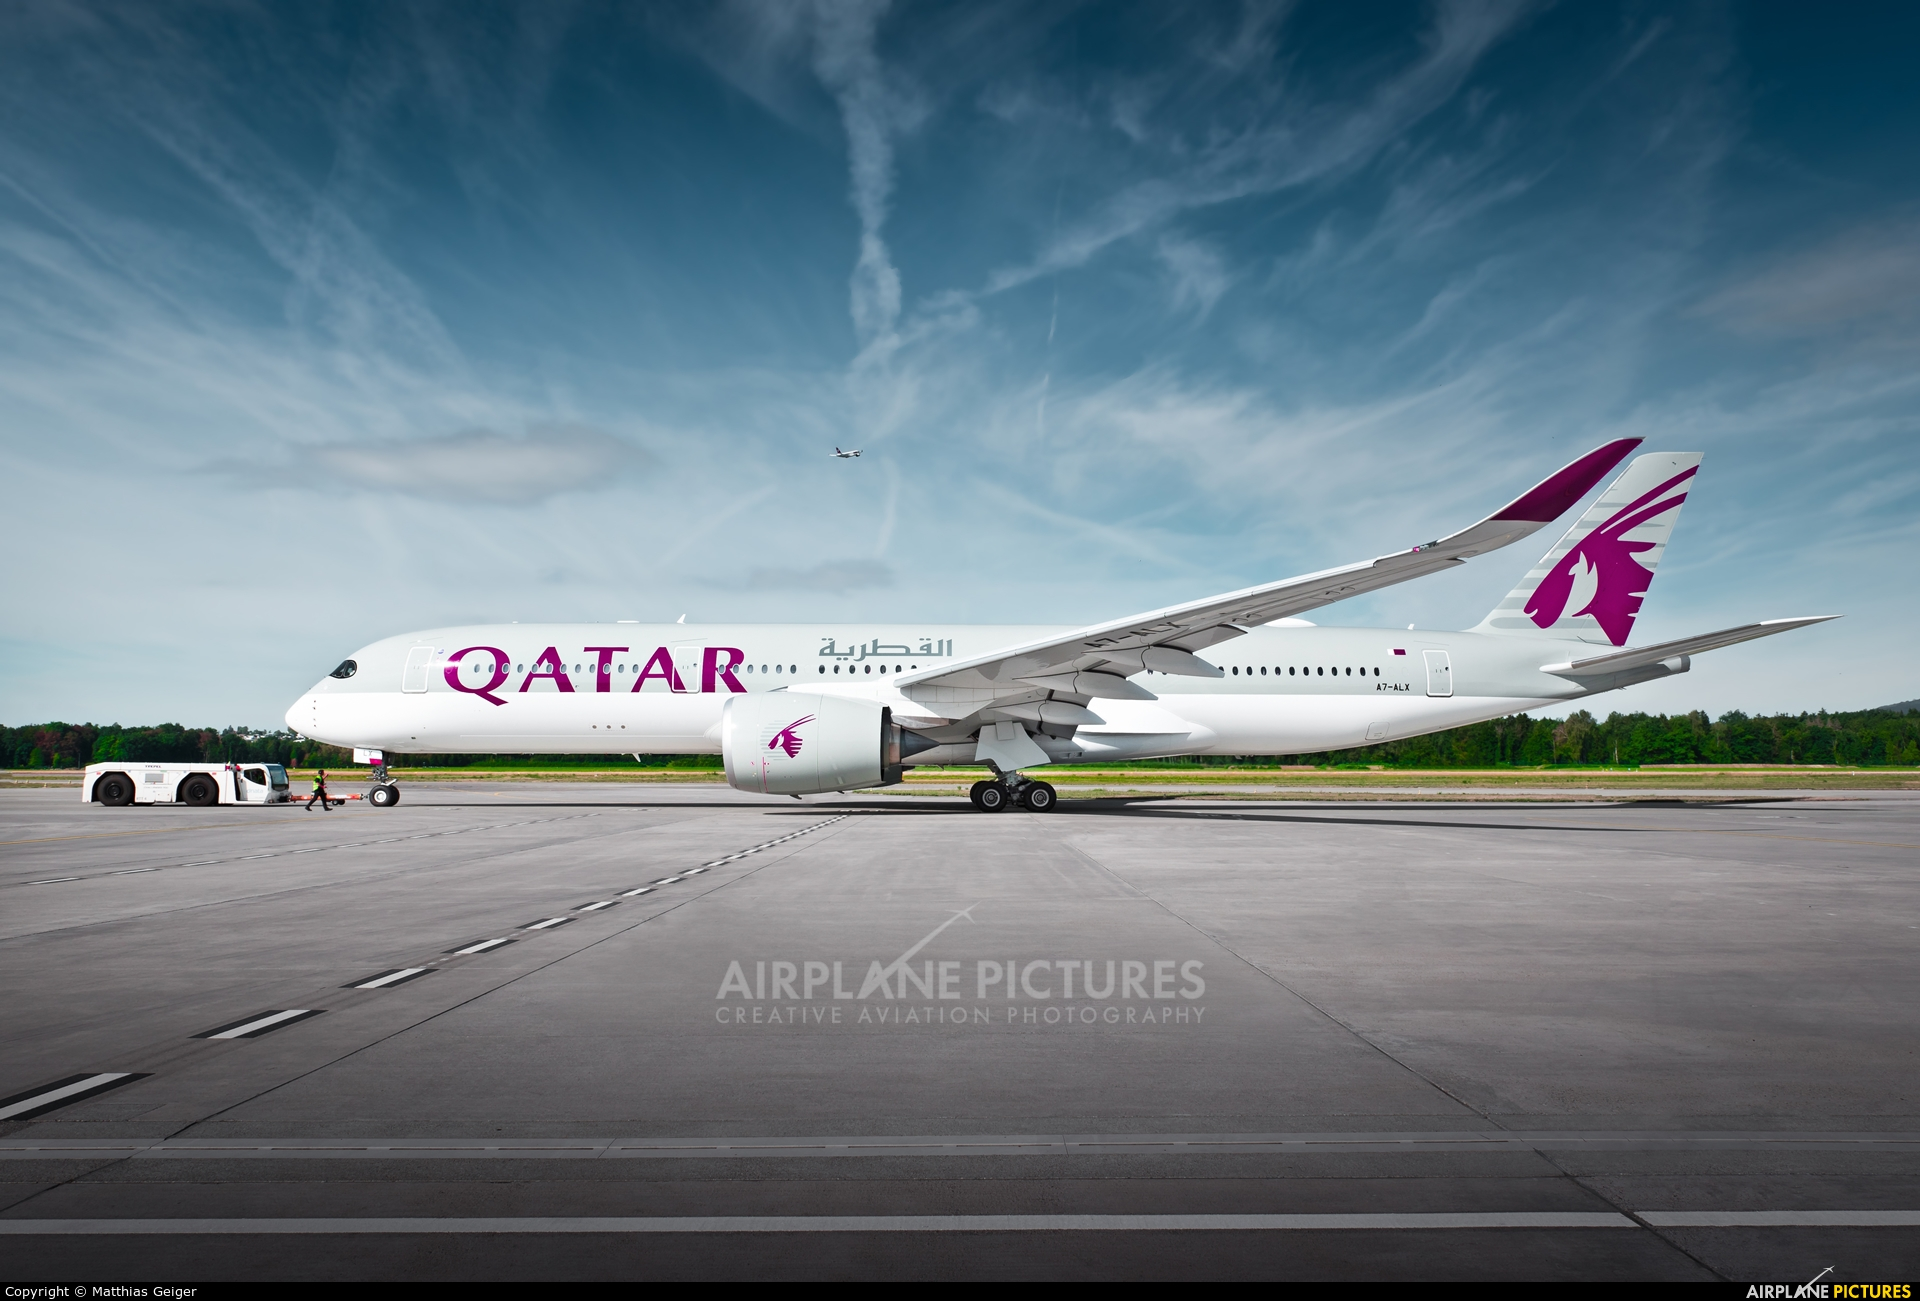 Qatar Airways A7-ALX aircraft at Zurich